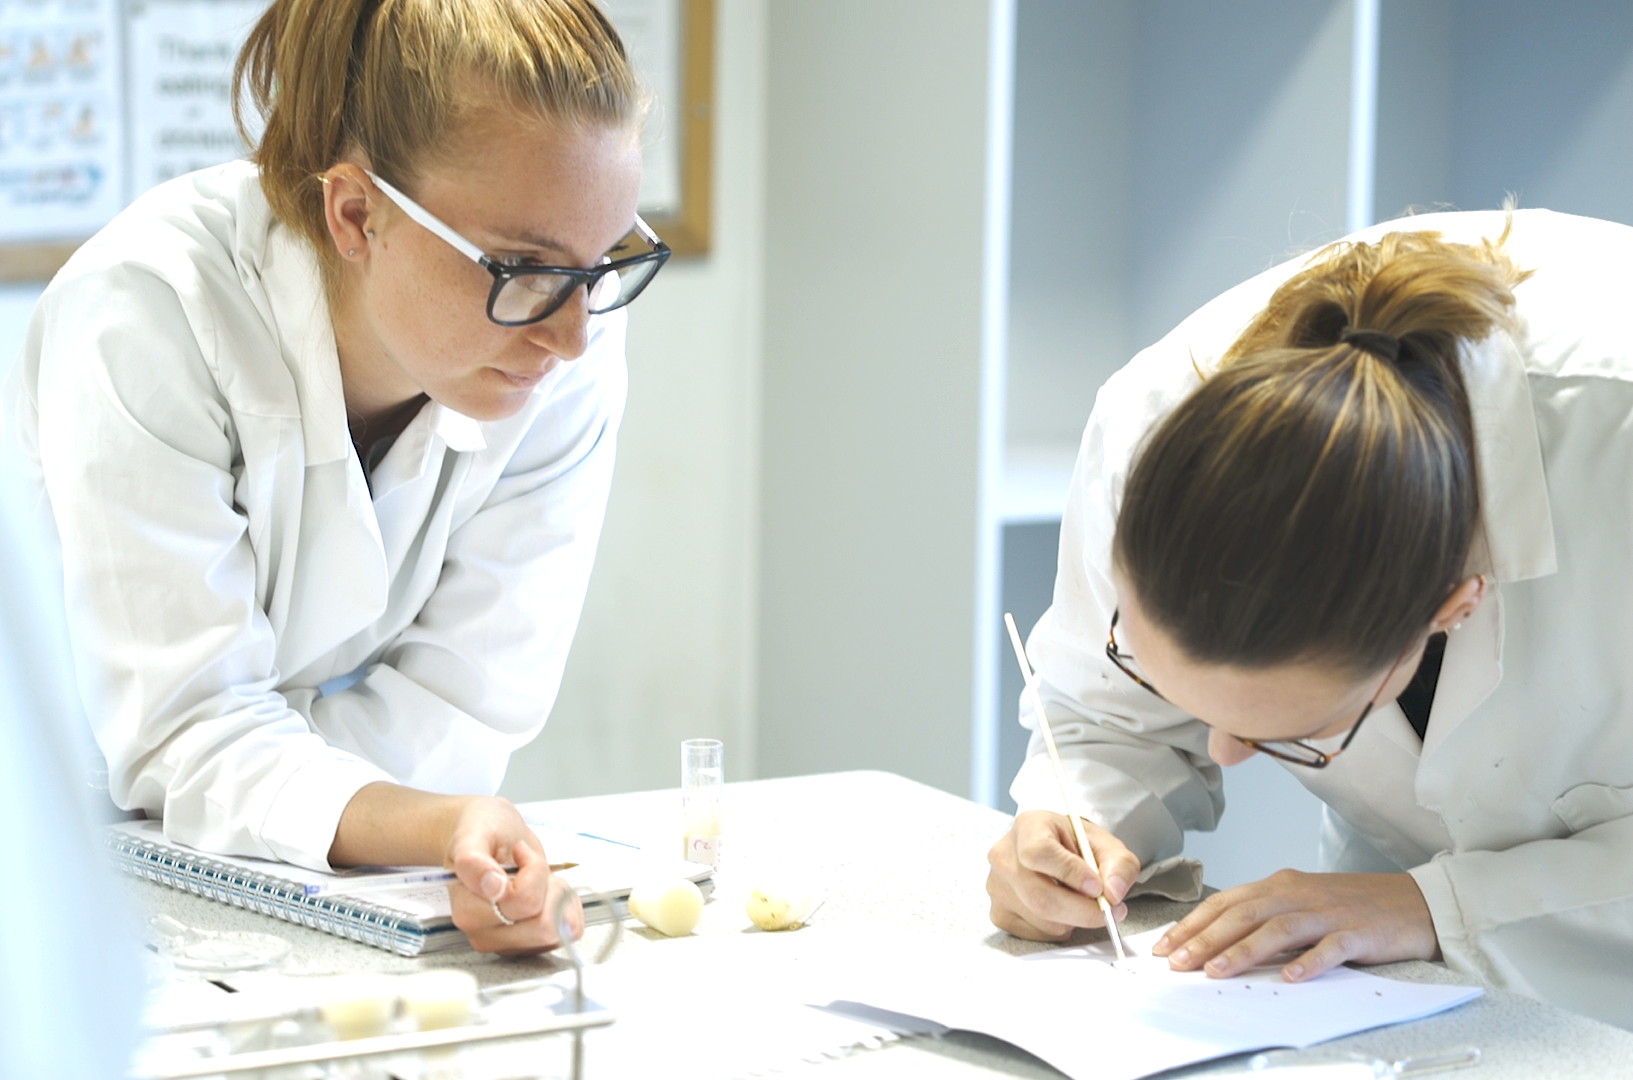 Two students in lab coats stood over desk studying with a paper coloured desk.